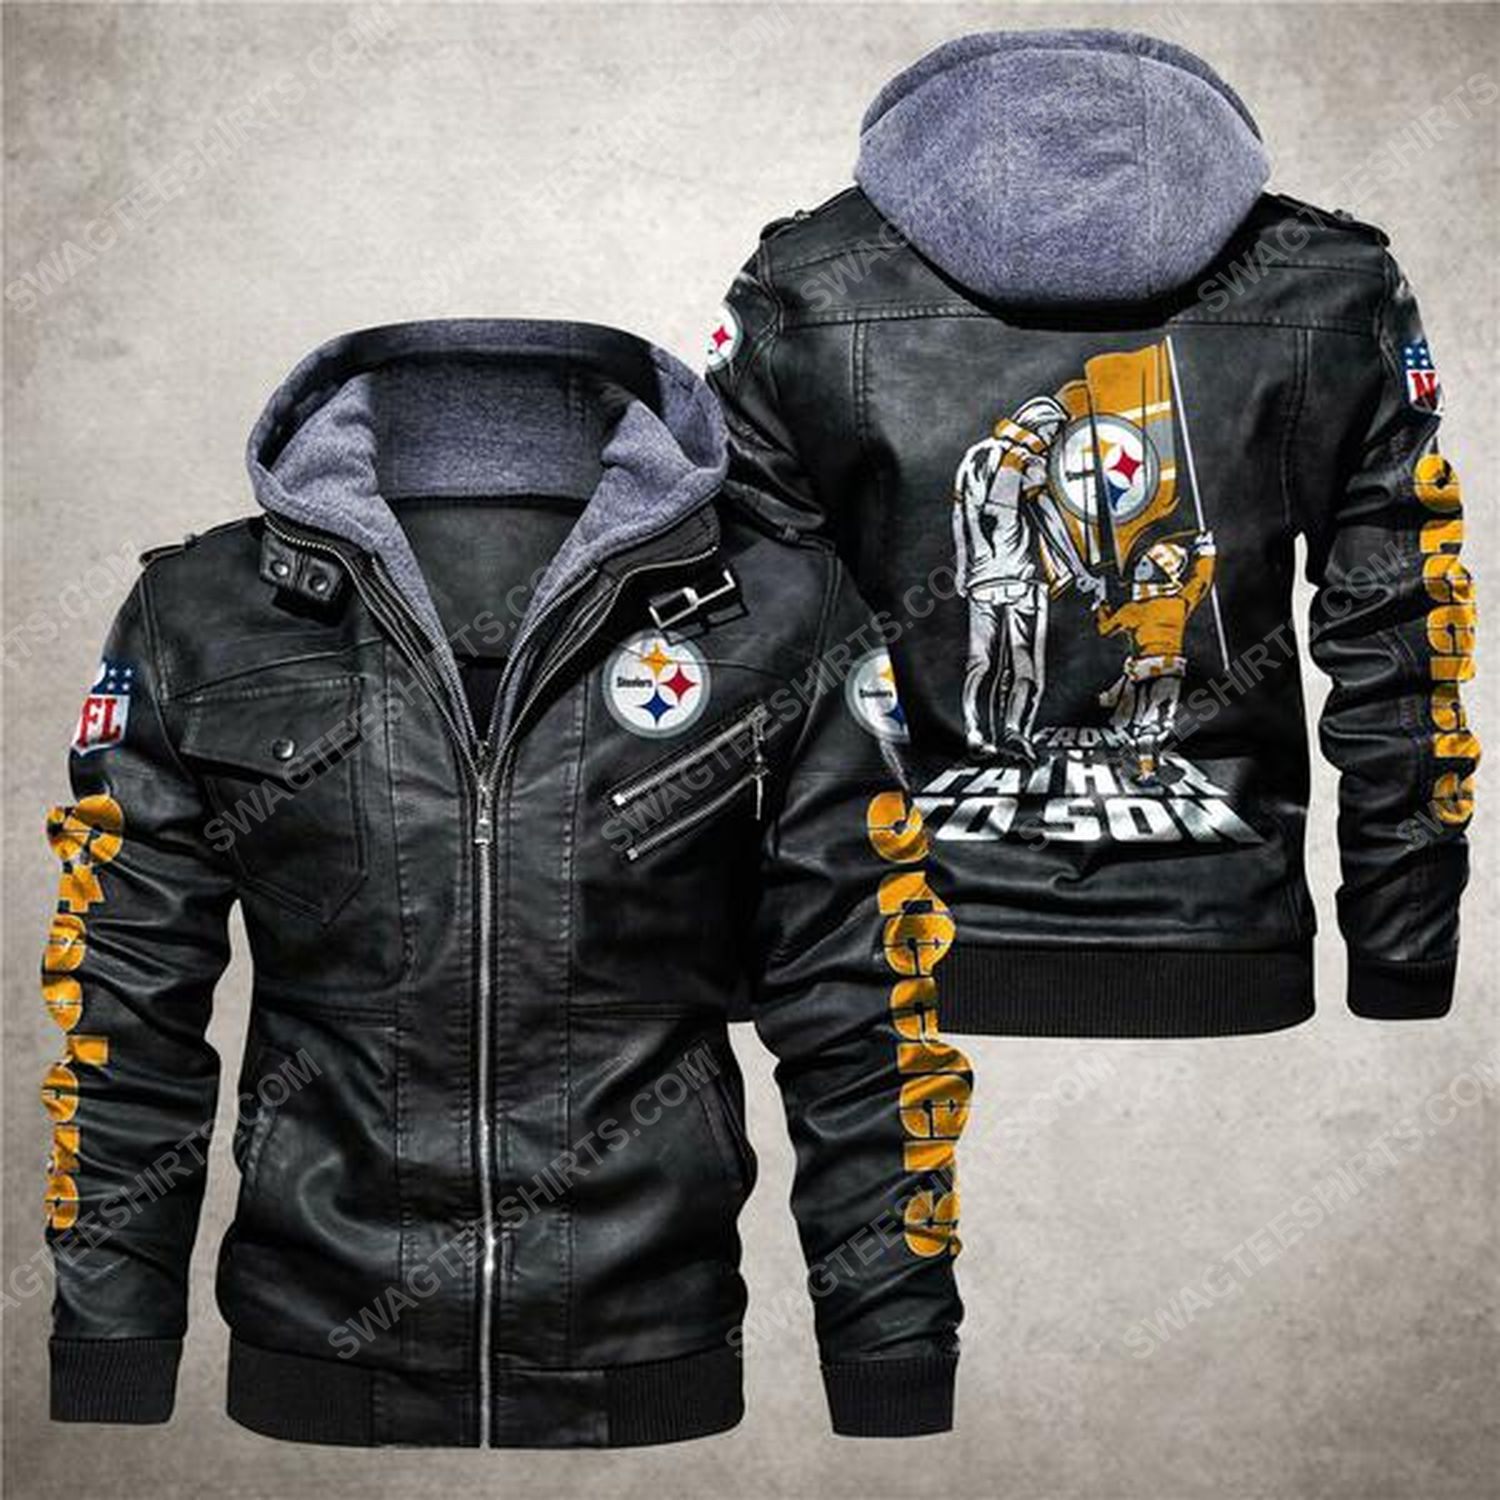 National football league pittsburgh steelers from father to son leather jacket - black